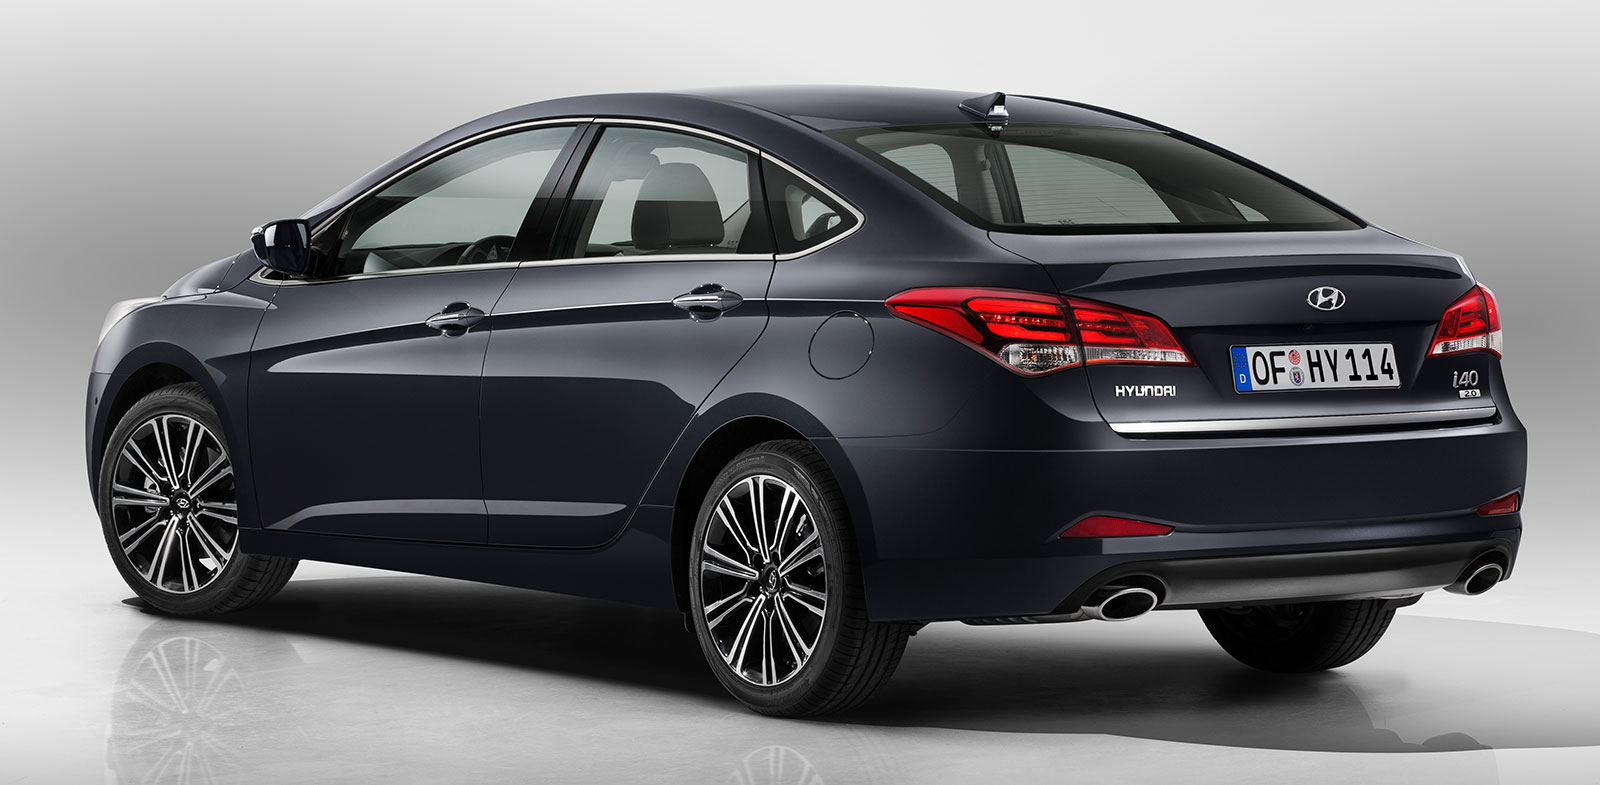 hyundai i40 facelift new 7 speed dct introduced image 295281. Black Bedroom Furniture Sets. Home Design Ideas